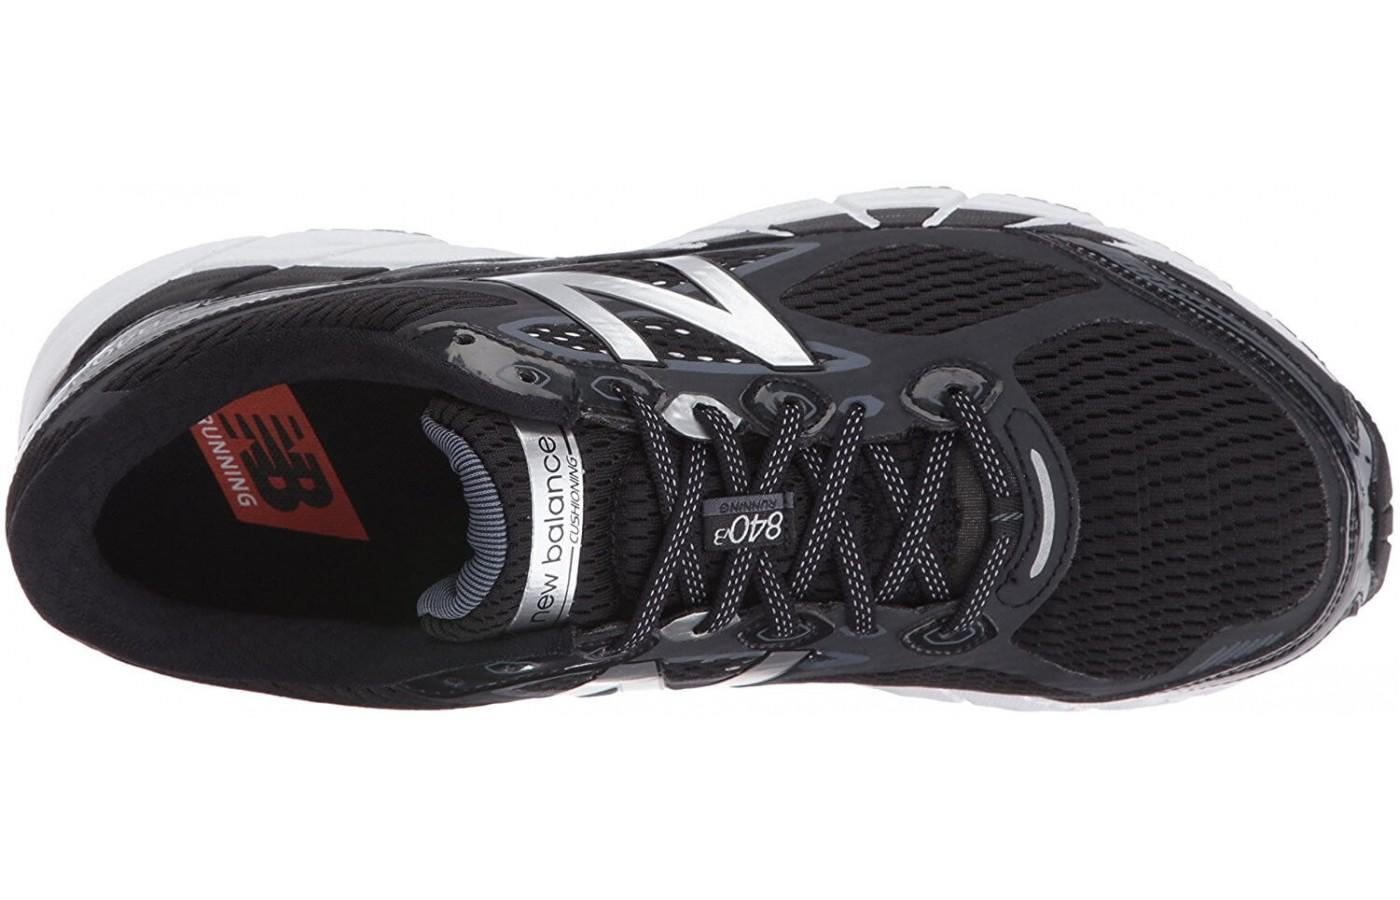 The upper mesh of the New Balance 840 v3 has better breathability than the previous version